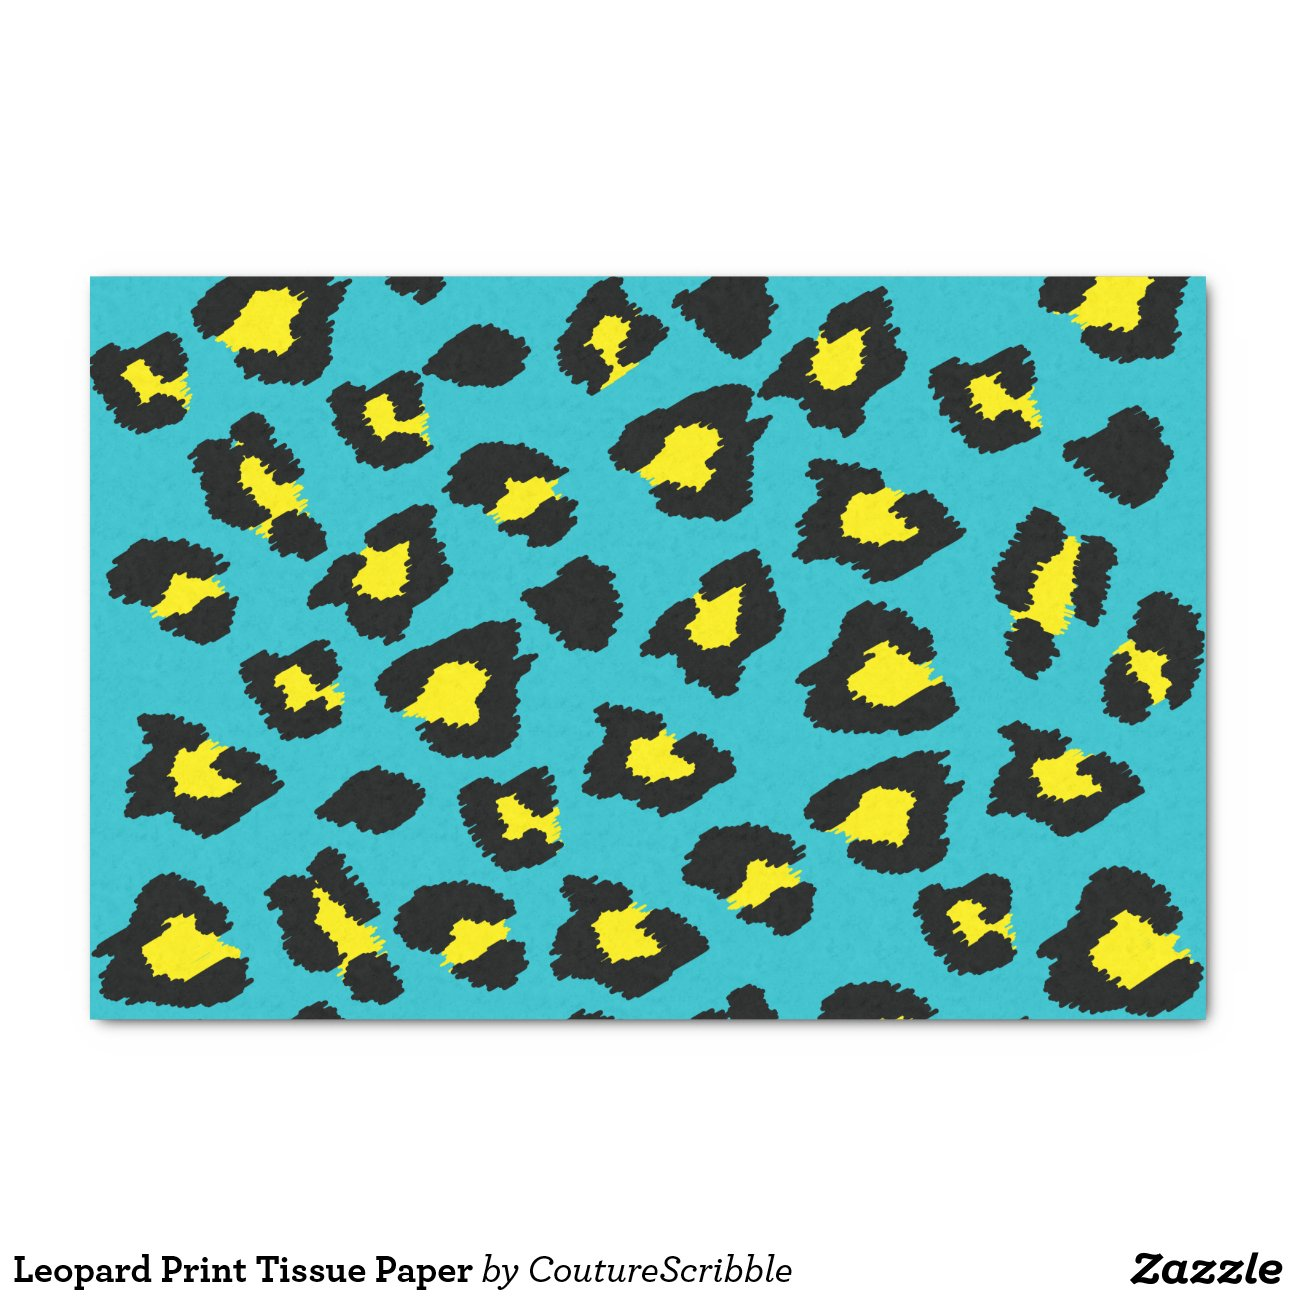 leopard print tissue paper Shop for animal print tissue paper at s&s worldwide in 5 wild designs great gift wrap, craft material, basket filler and more 12 each of 5 prints 20 x 30 each.